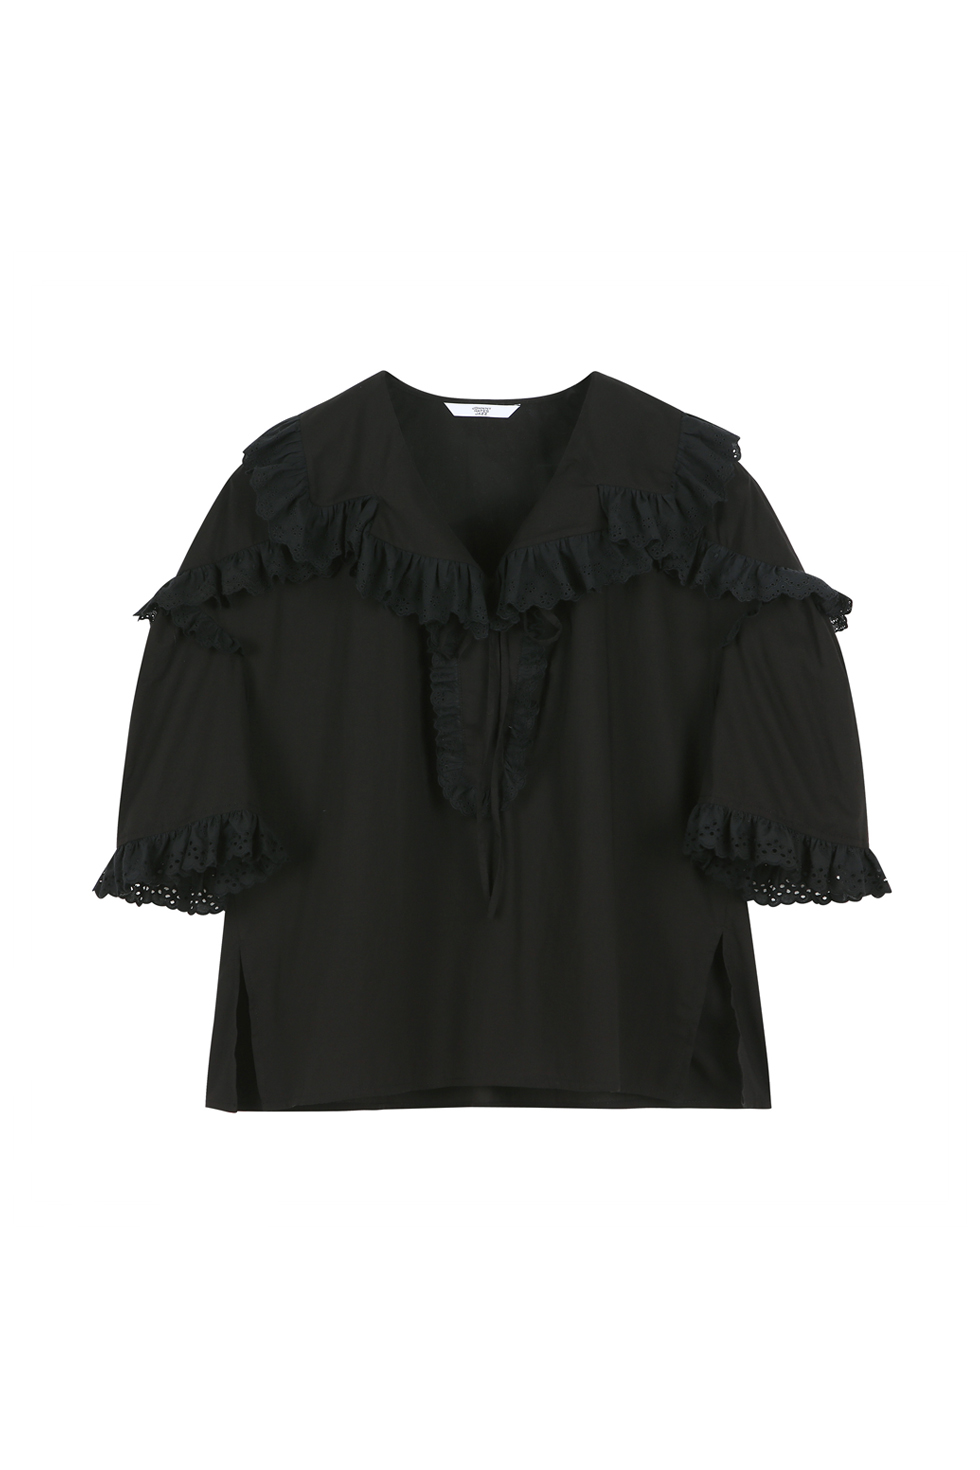 BROIDERY RUFFLE BLOUSE - BLACK